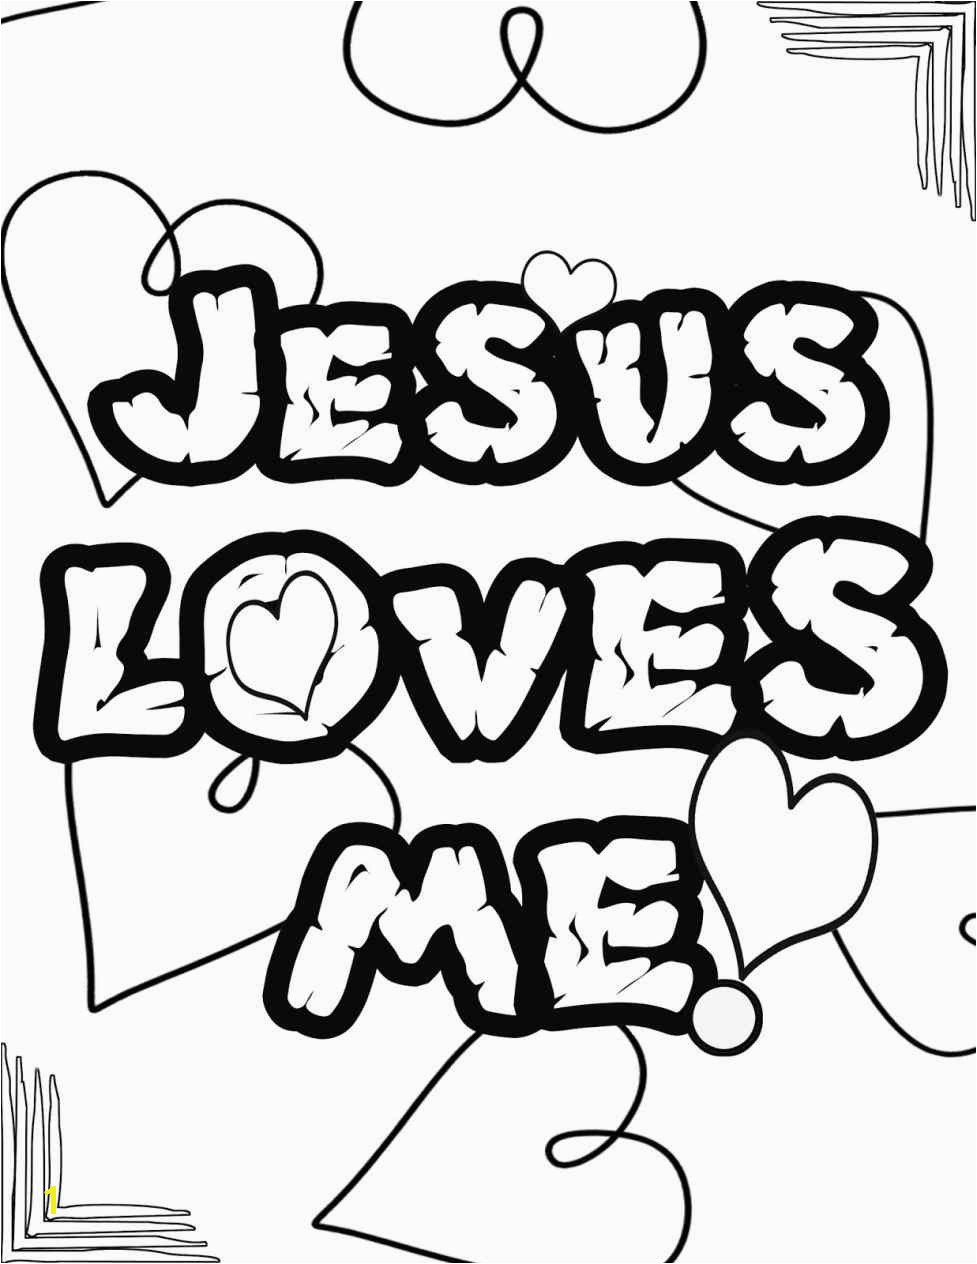 Popular Jesus Loves Me Coloring Sheet Page Color Pages For Kids Jesus Loves Me Coloring Page